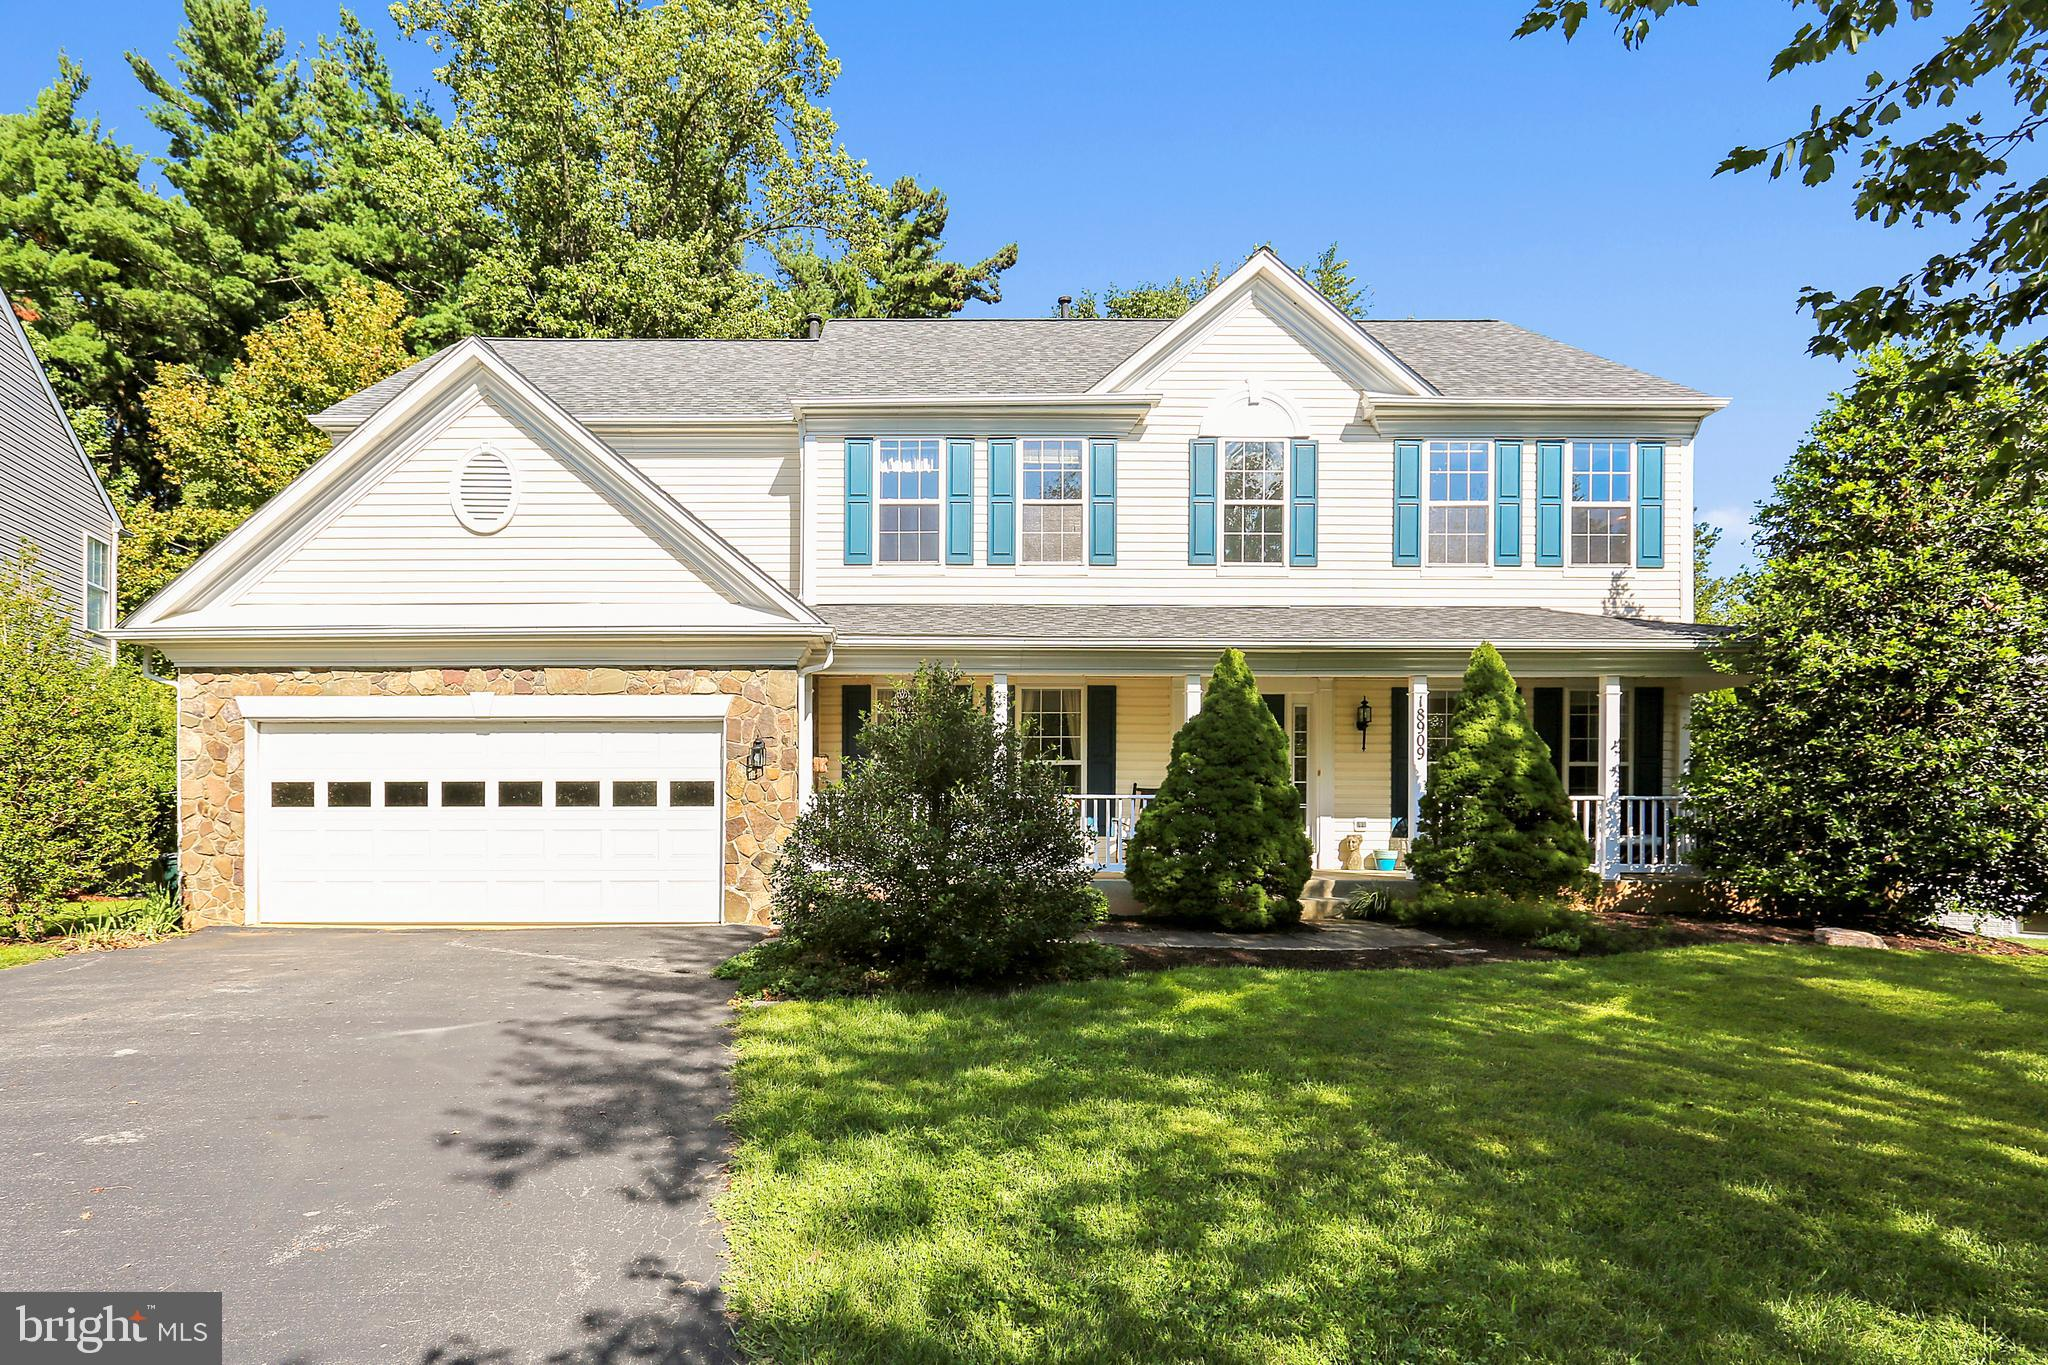 18909 ABBEY MANOR DRIVE, BROOKEVILLE, MD 20833